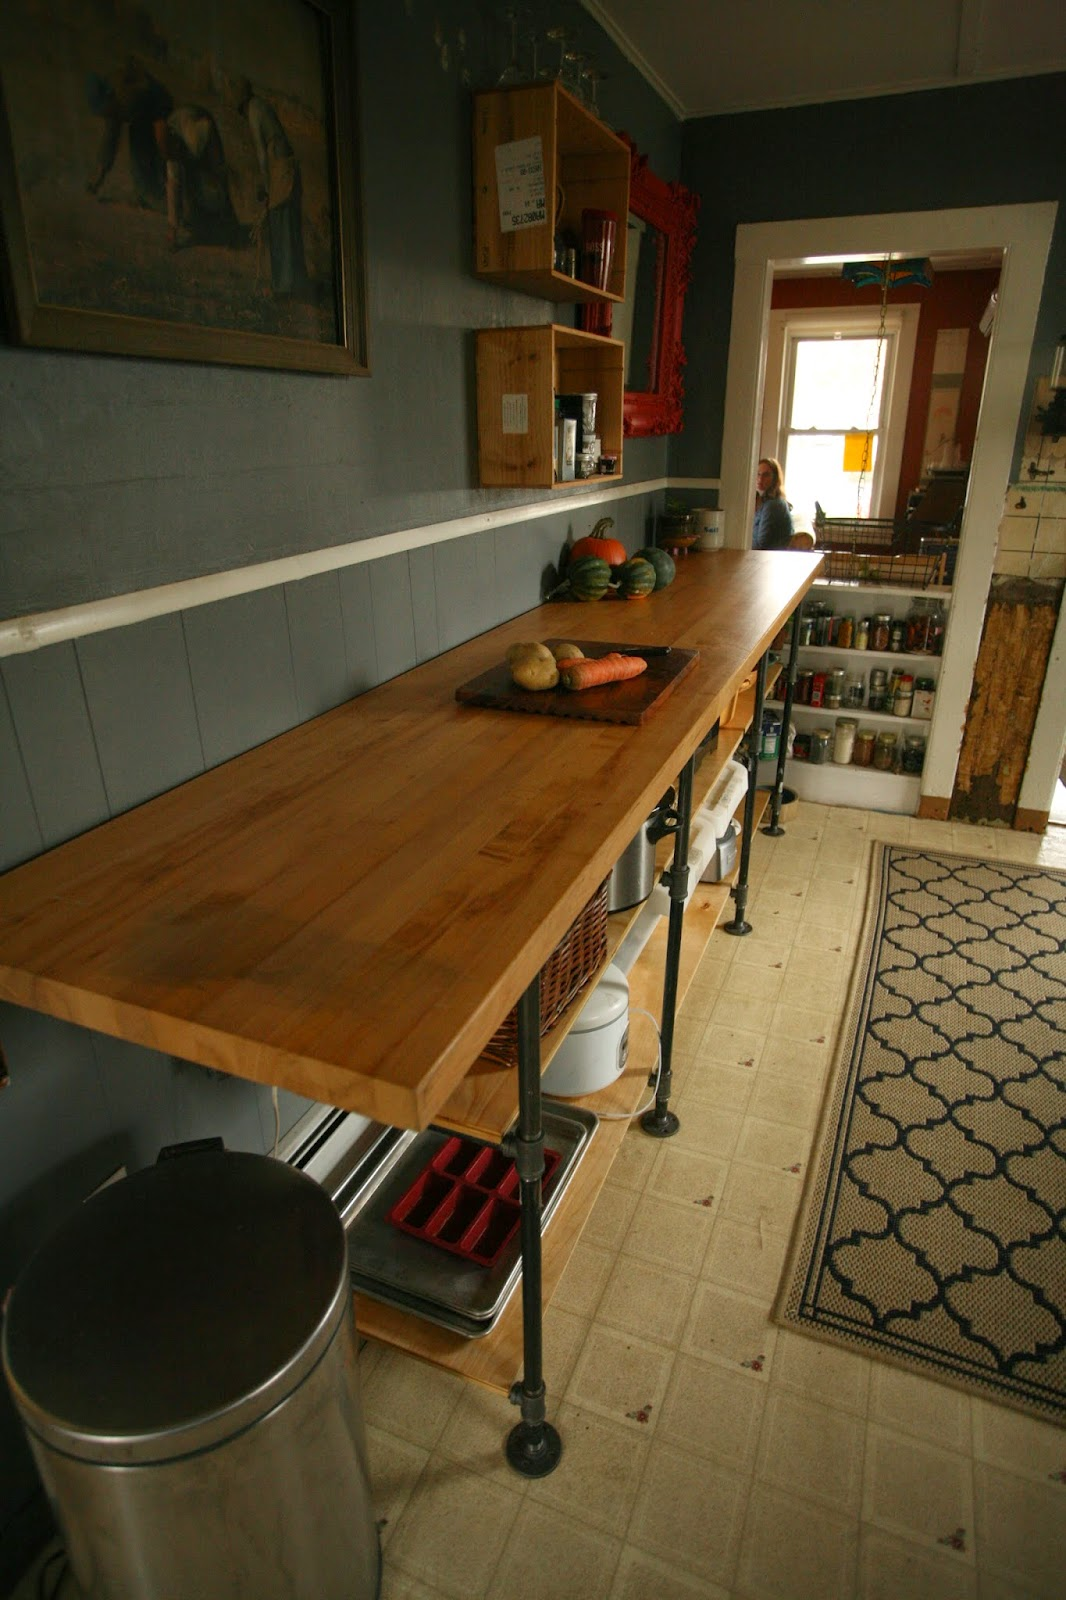 Whittled Down Life: DIY Black Pipe Kitchen Counter on homemade bed ideas, homemade cabinet ideas, homemade garage ideas, homemade fireplace ideas, homemade cutting board ideas, homemade backyard ideas, homemade bedroom ideas, homemade bookshelf ideas,